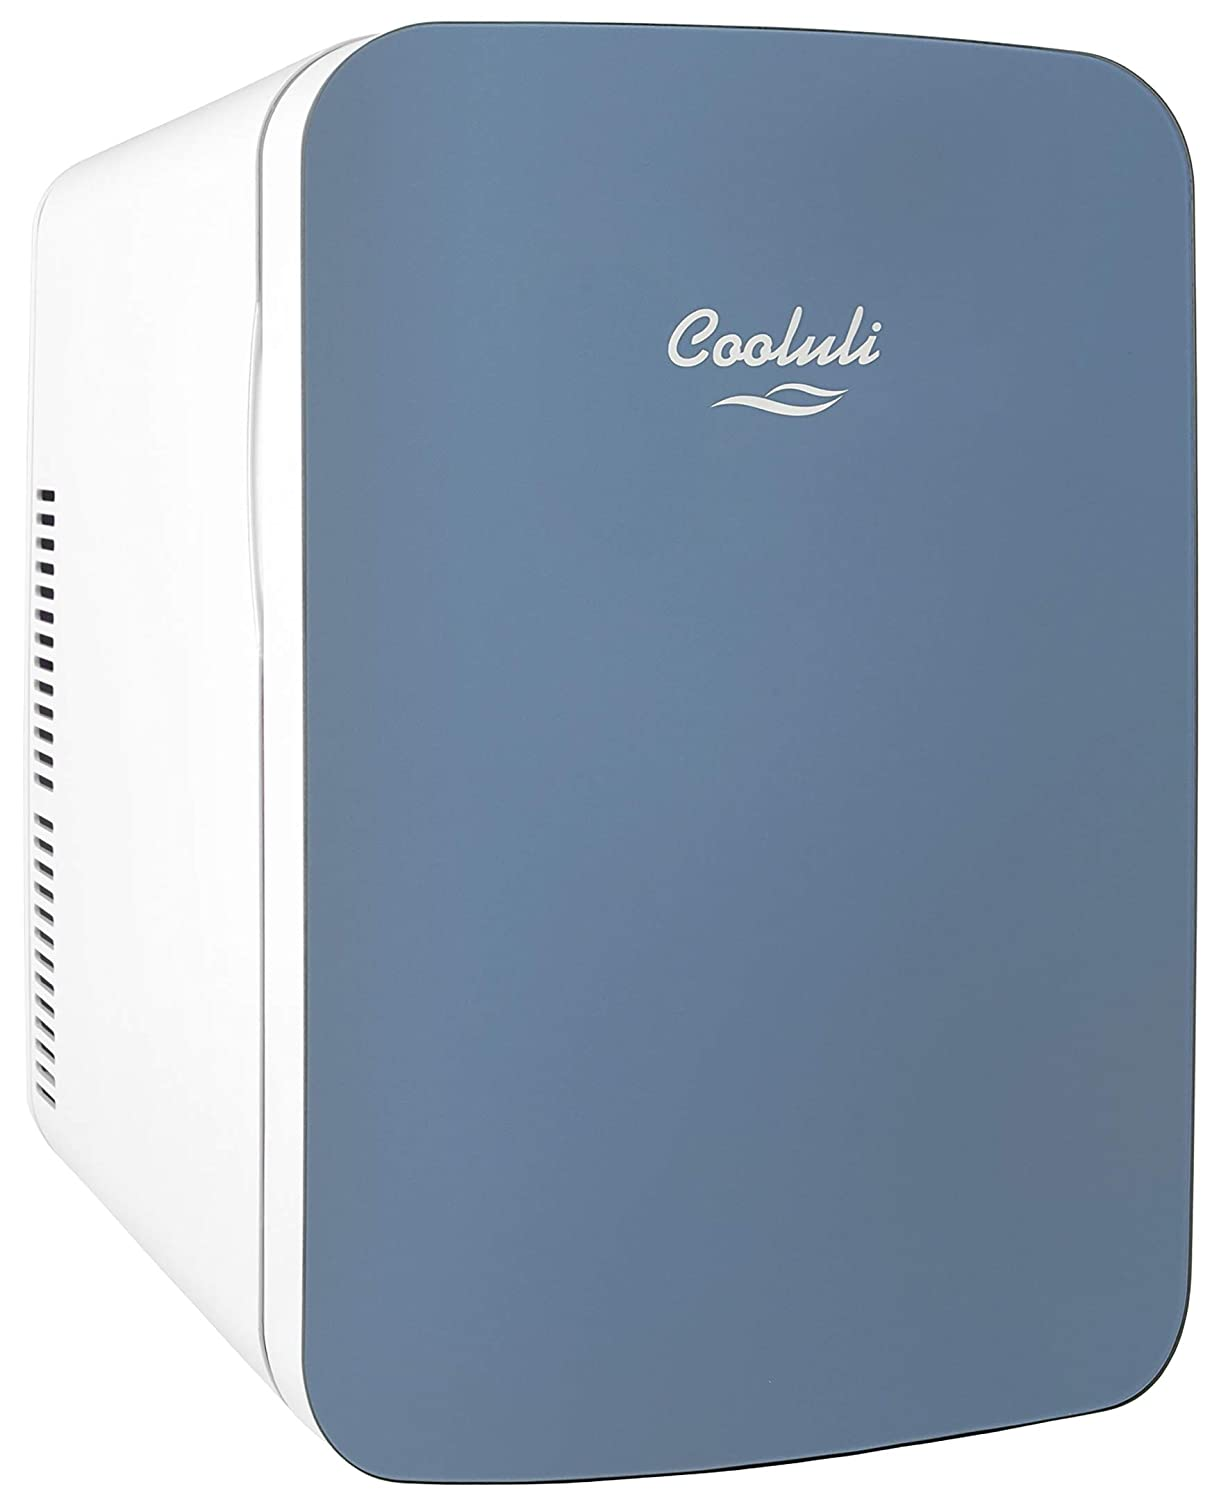 Cooluli Infinity Blue 15 Liter Compact Portable Cooler Warmer Mini Fridge for Bedroom, Office, Dorm, Car - Great for Skincare & Cosmetics (110-240V/12V)